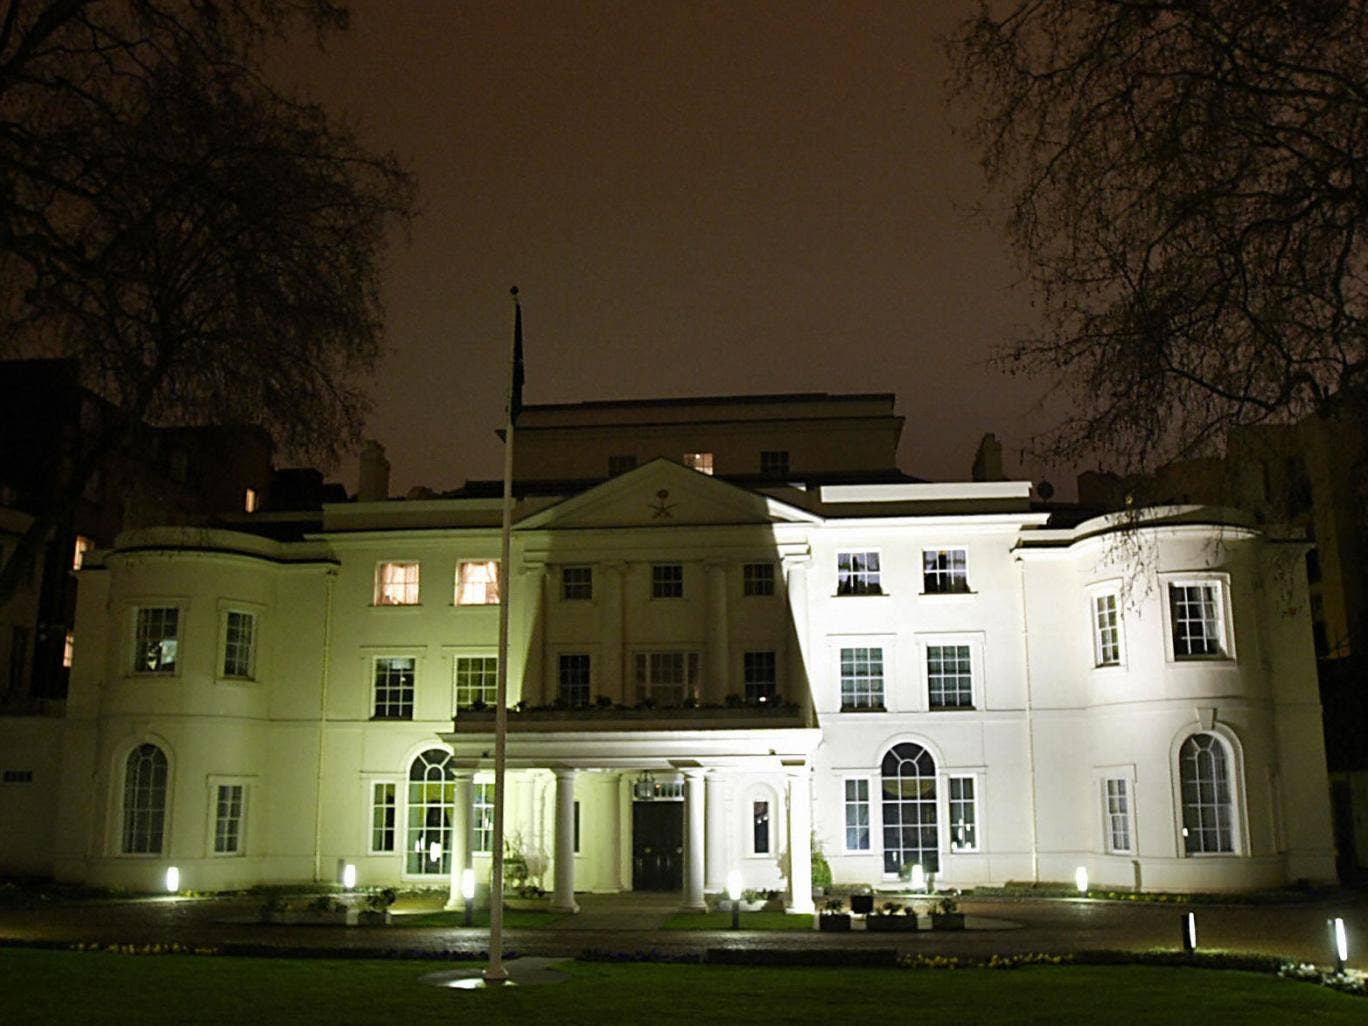 The Saudi Arabian embassy in London